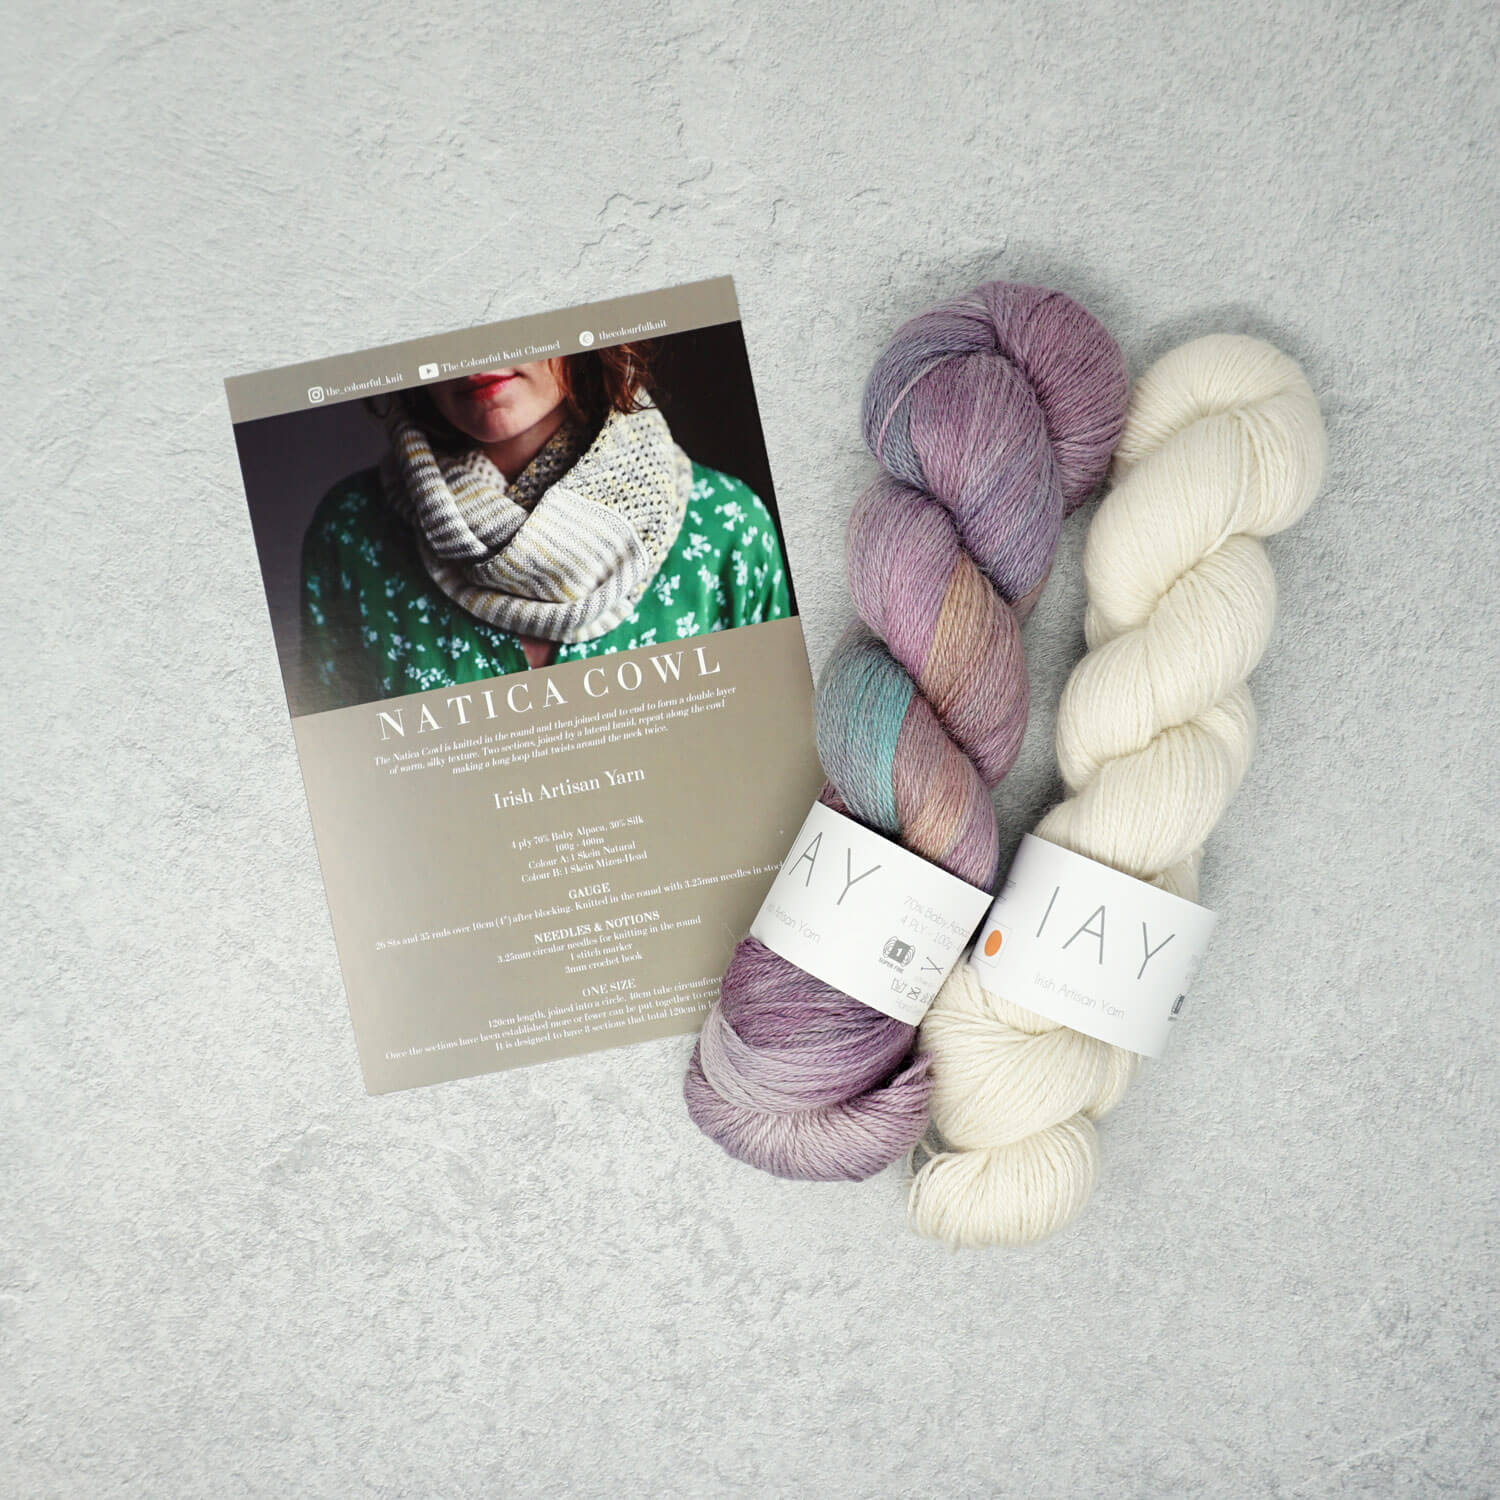 Irish Artisan Yarn - Natica Cowl Kit- 2 x 100g 4ply & Pattern | Yarn Worx